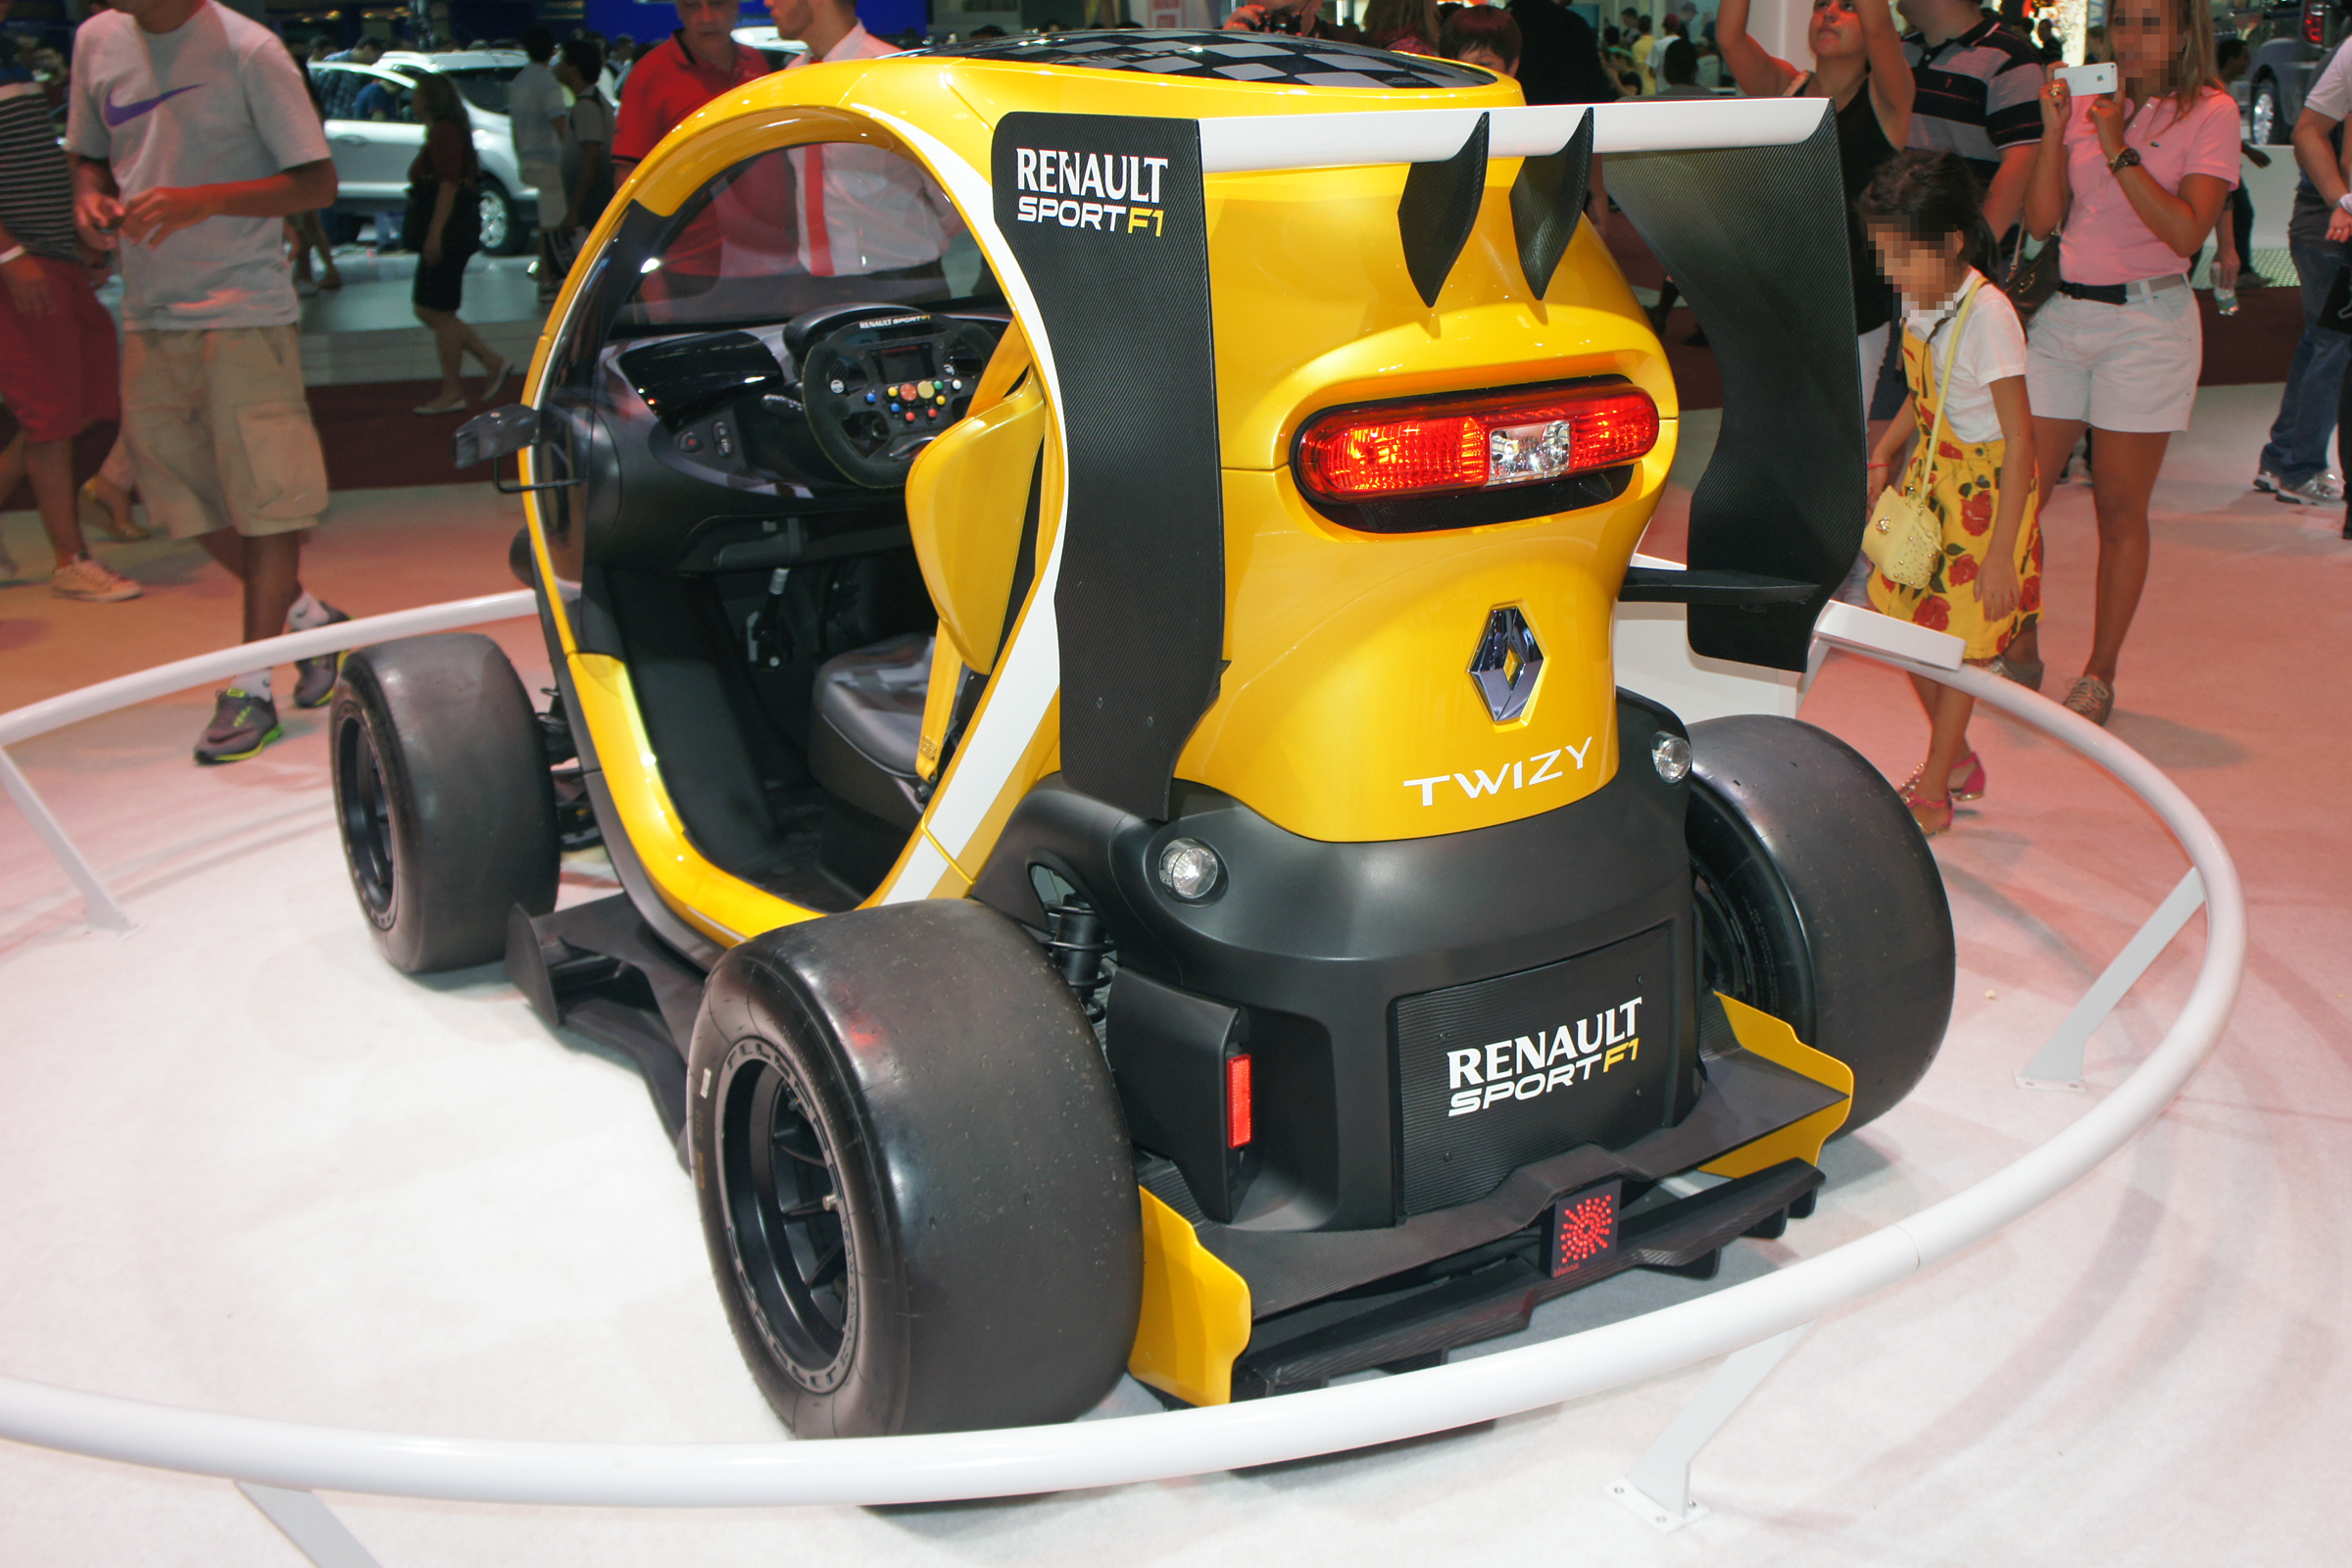 file renault twizy sport f1 sao 2014 0330 jpg wikimedia commons. Black Bedroom Furniture Sets. Home Design Ideas